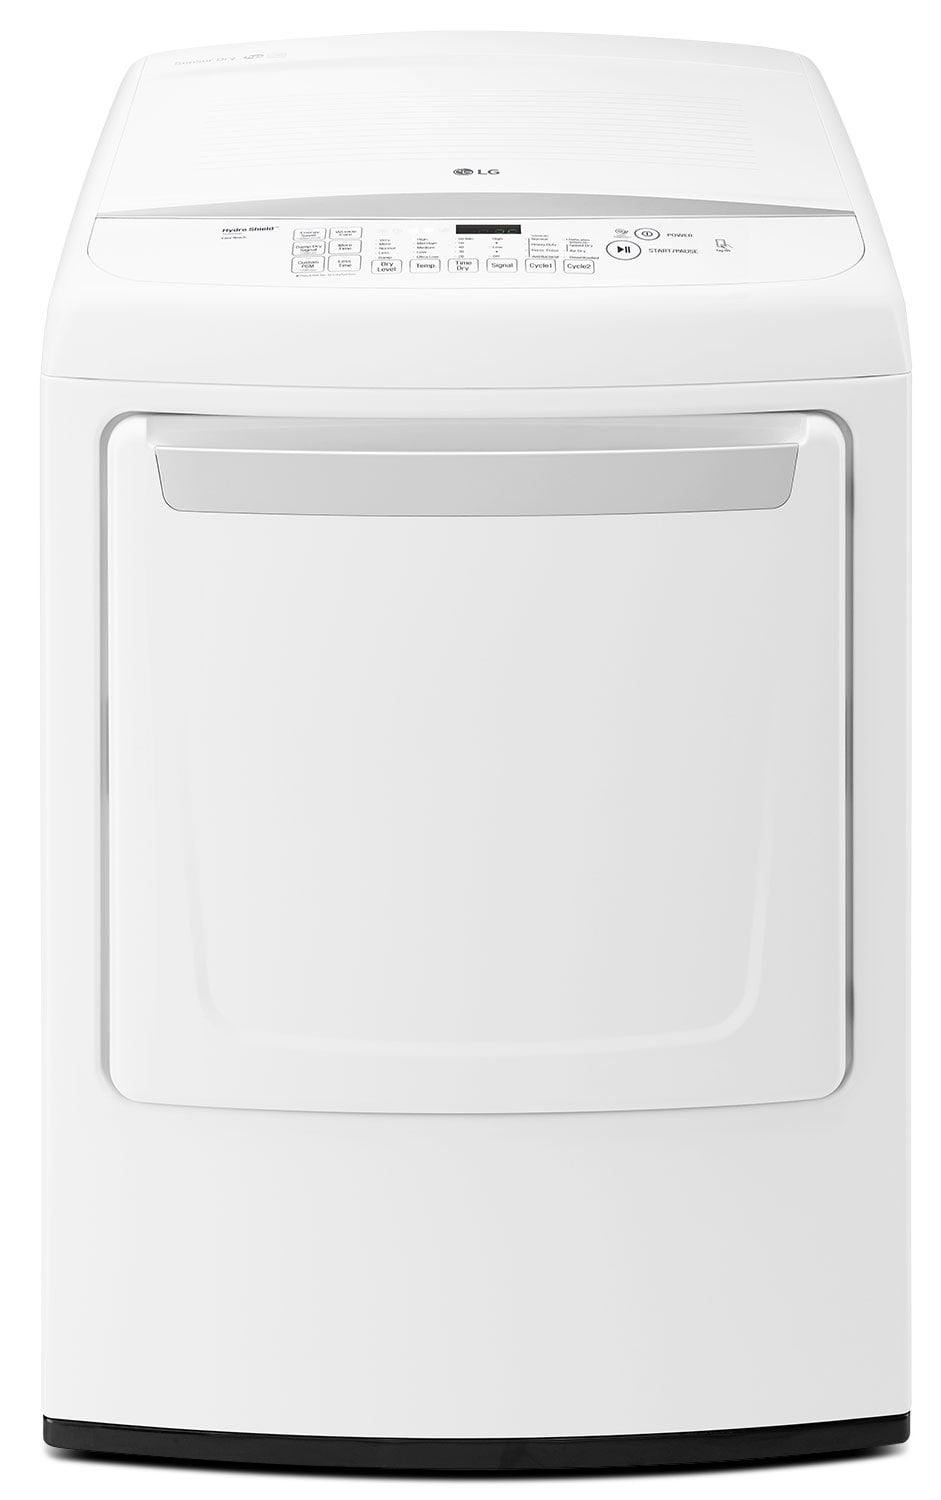 LG Appliances White Electric Dryer (7.3 Cu. Ft.) - DLE1501W